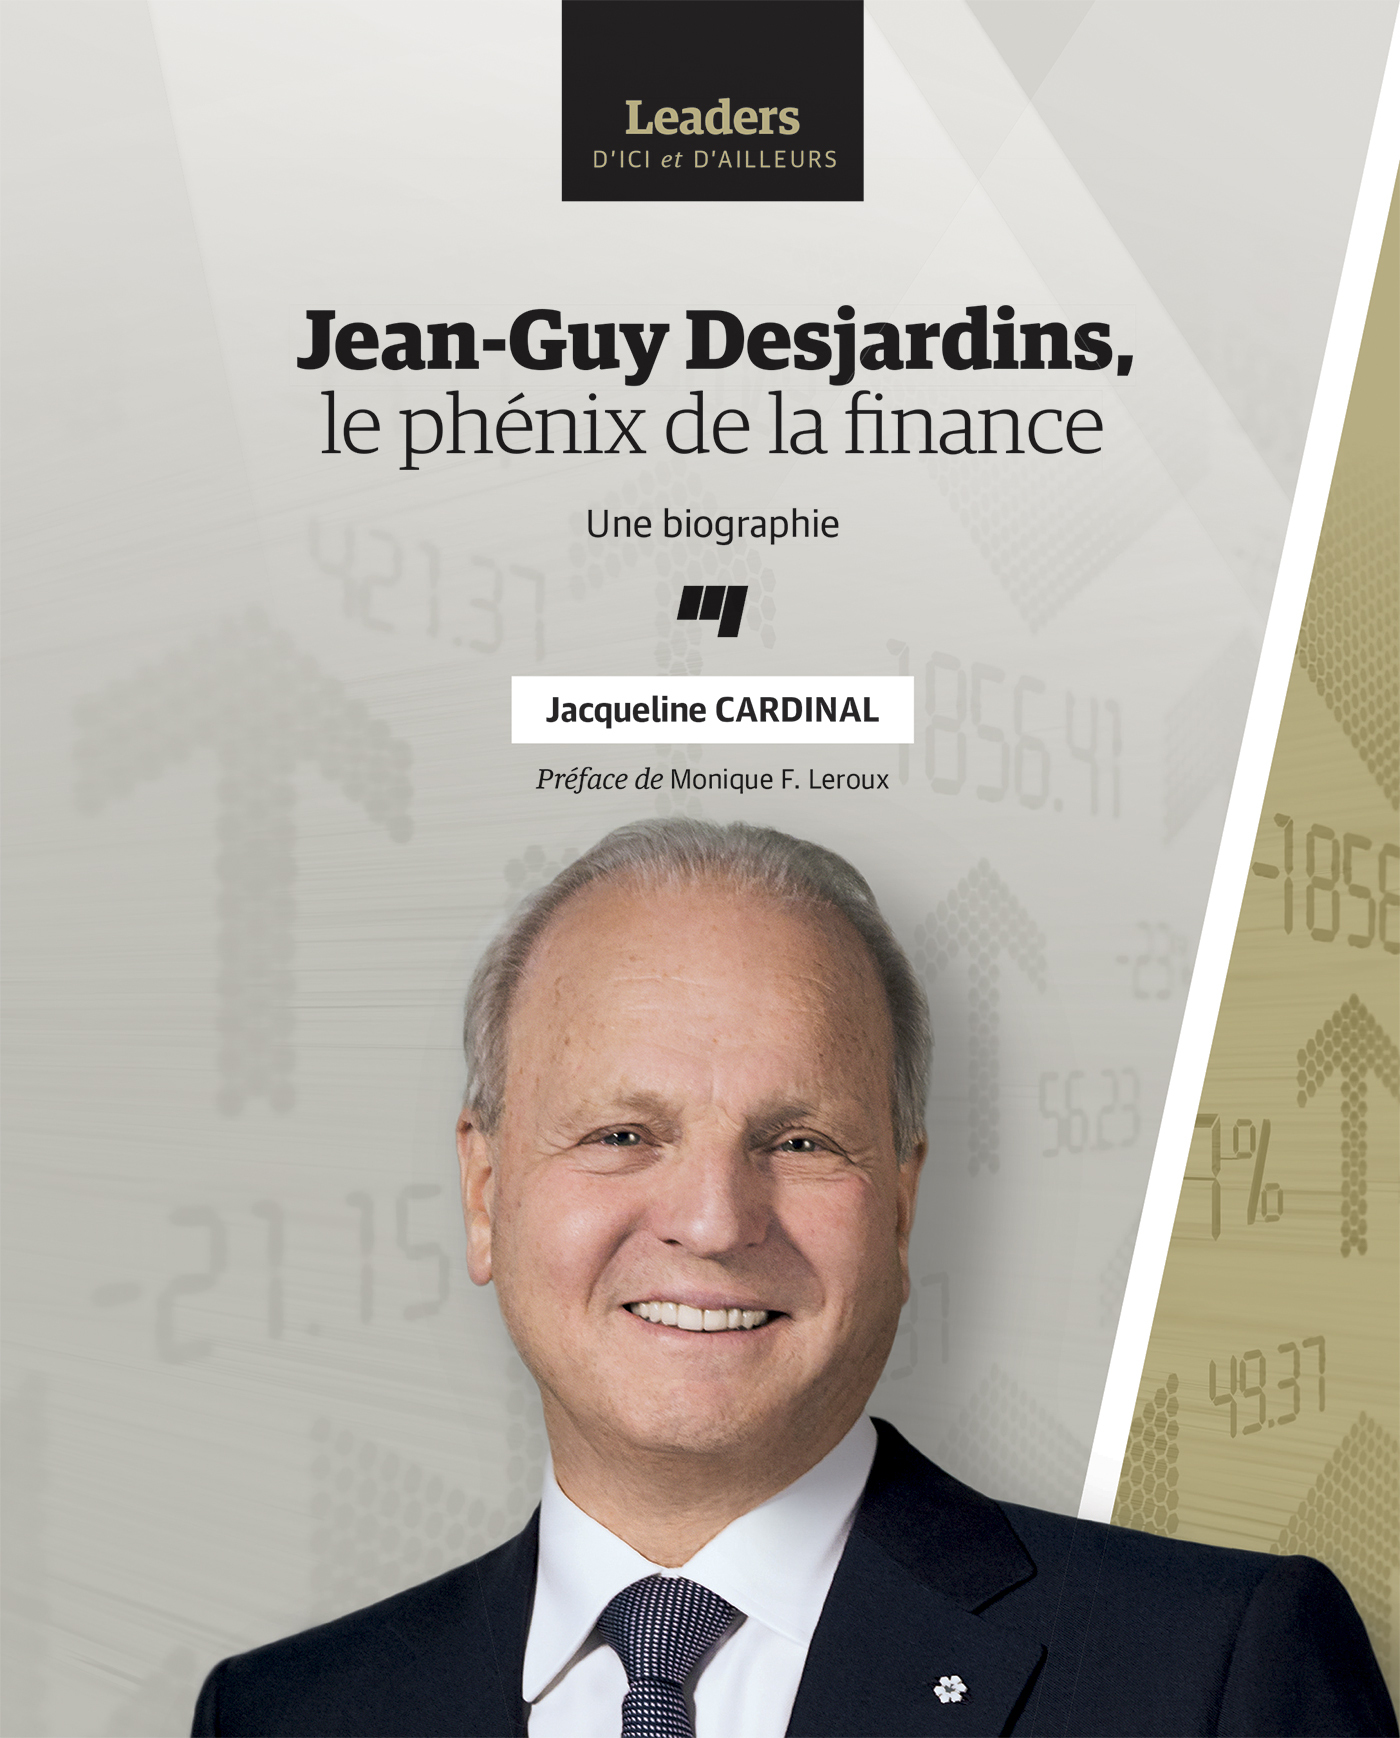 JEAN GUY DESJARDINS LE PHENIX DE LA FINANCE